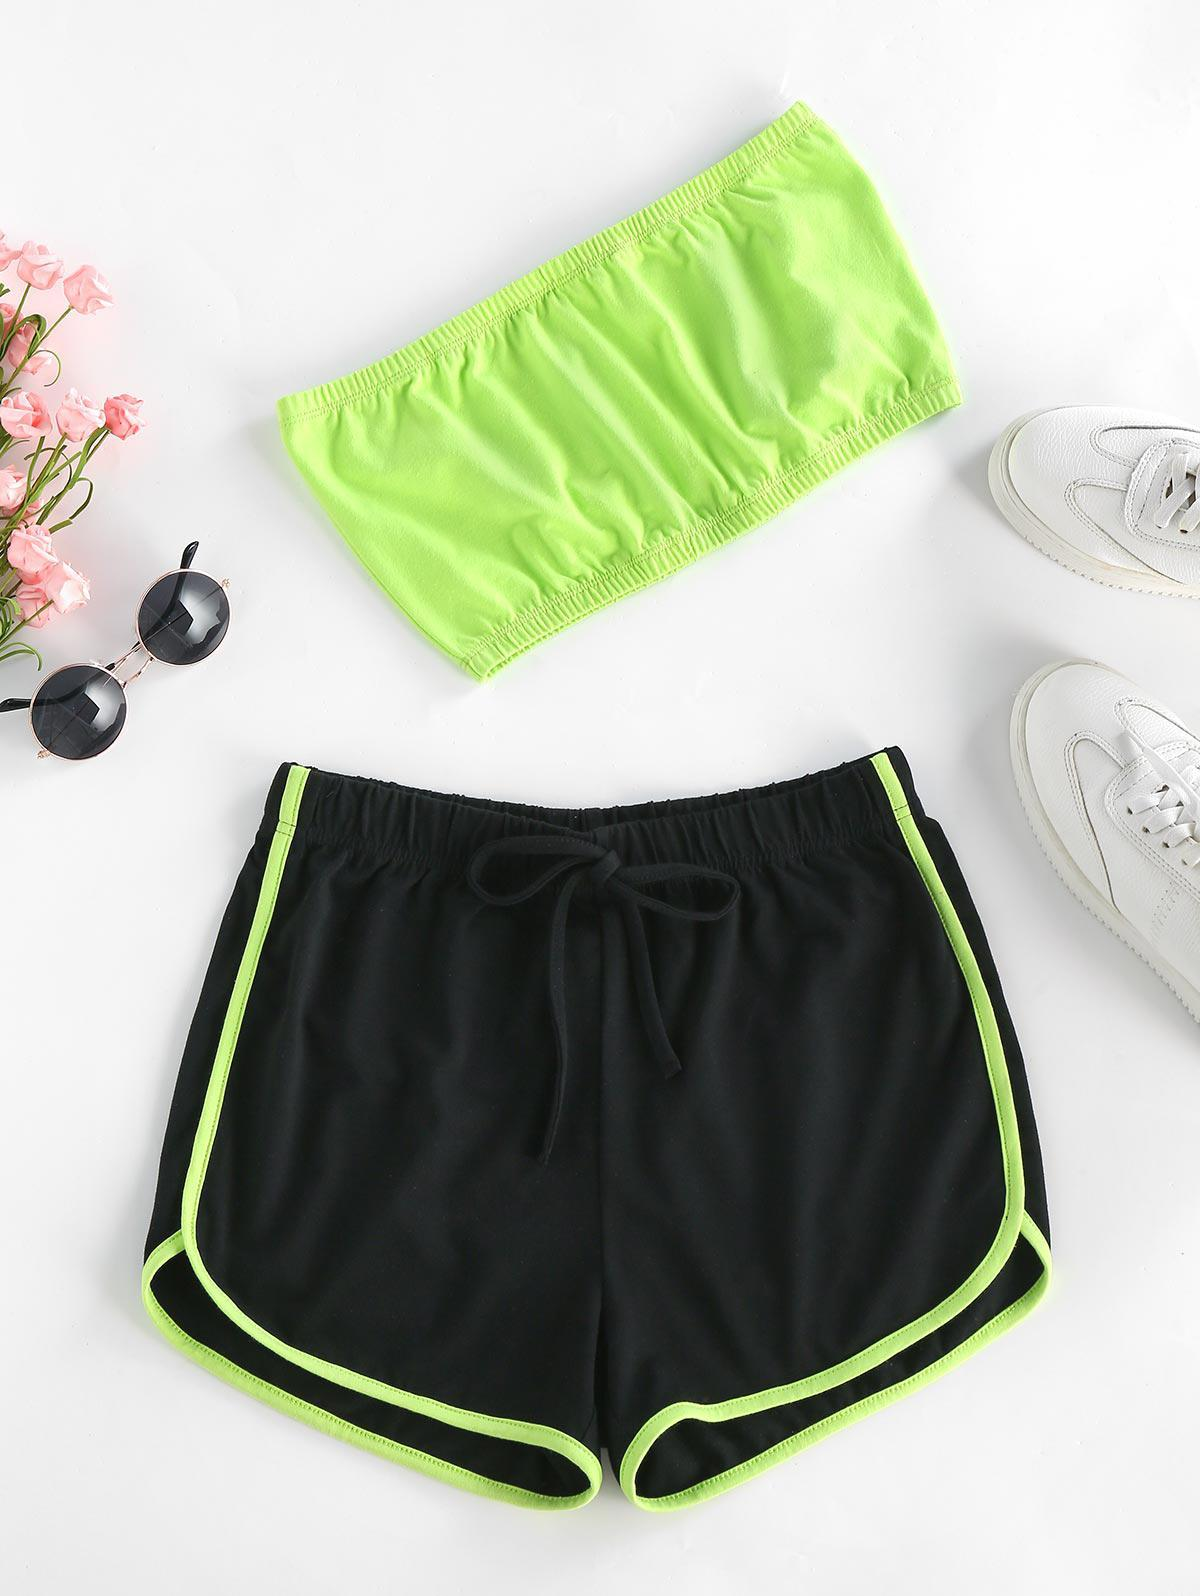 ZAFUL Neon Strapless Co Ord Set фото